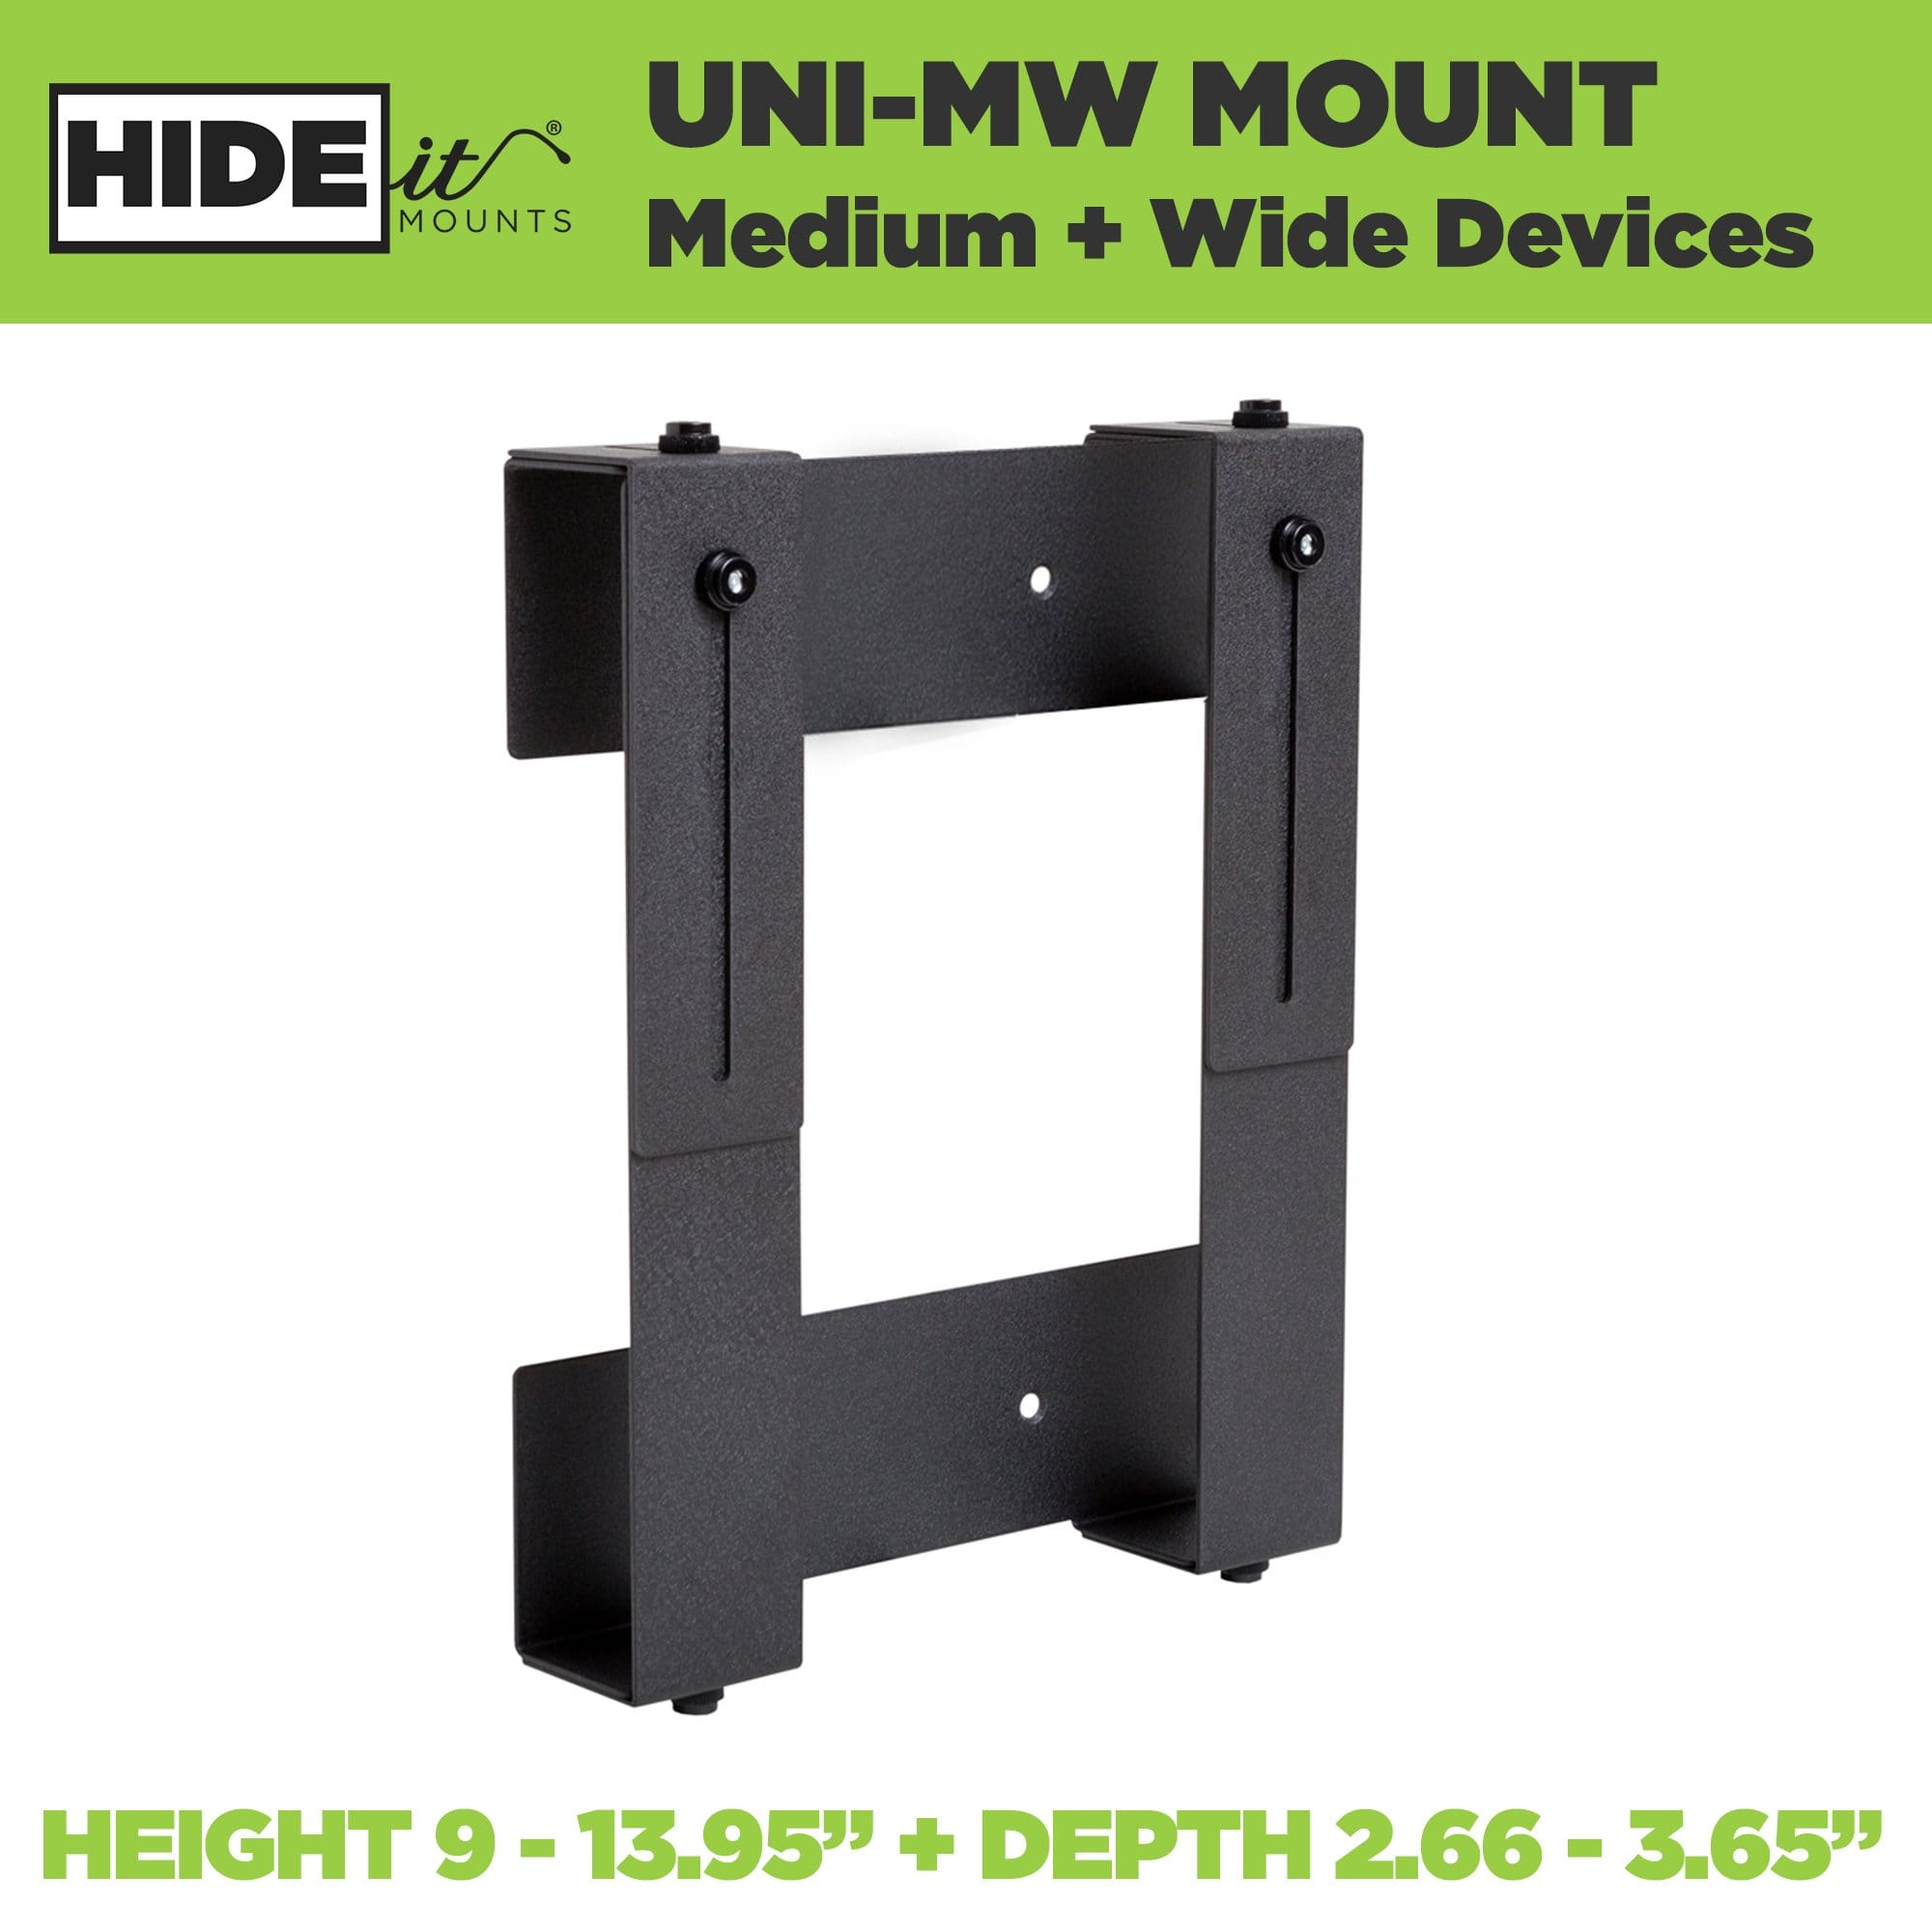 Steel adjustable wall mount for medium + wide-sized electronic devices, made by HIDEit Mounts.